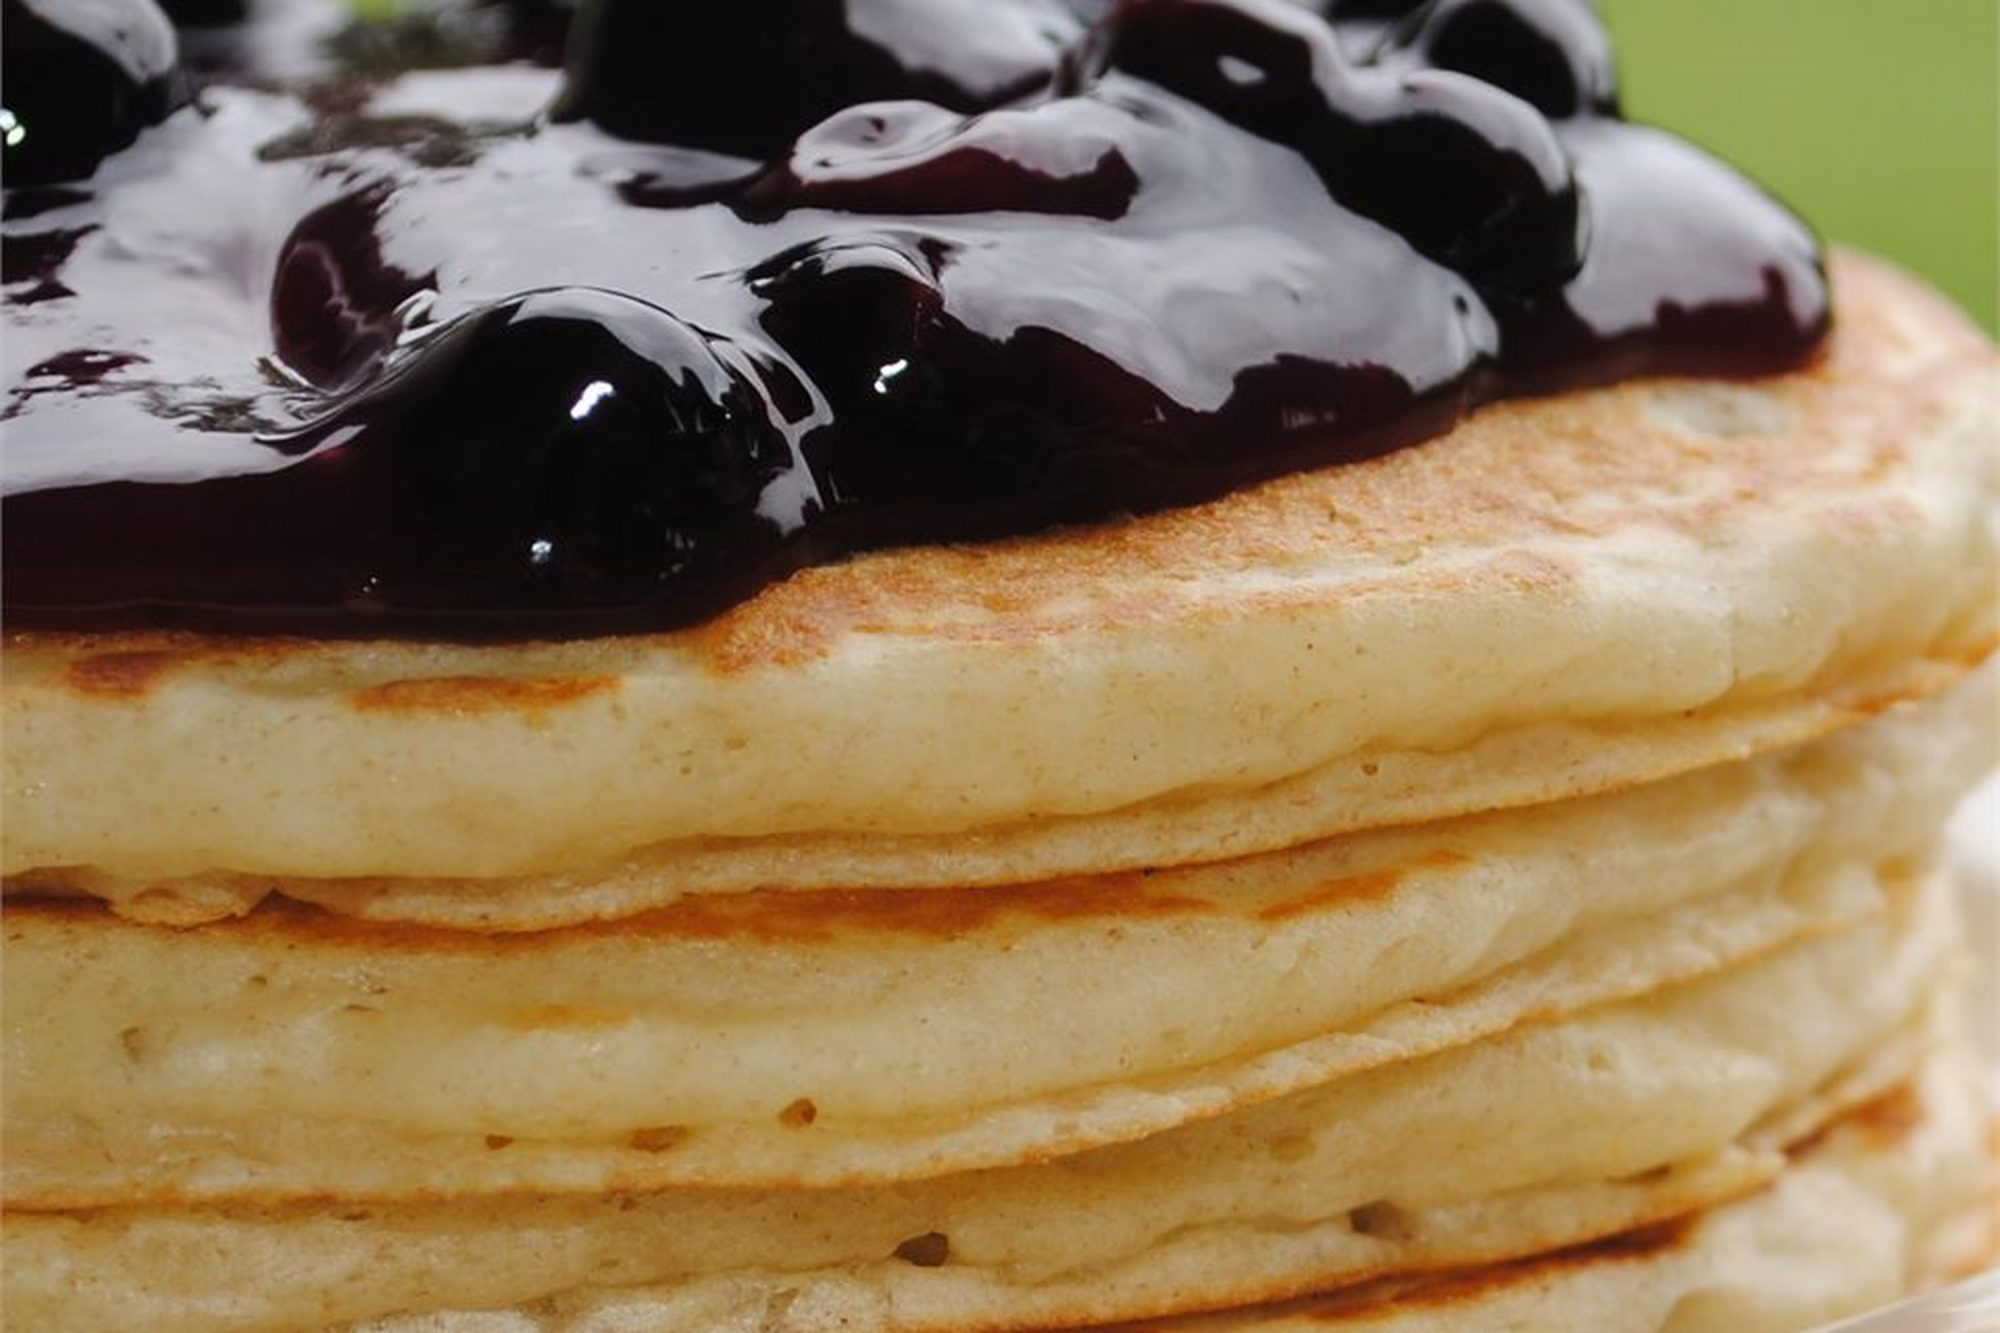 Buttermilk Pancakes II with blueberries on top